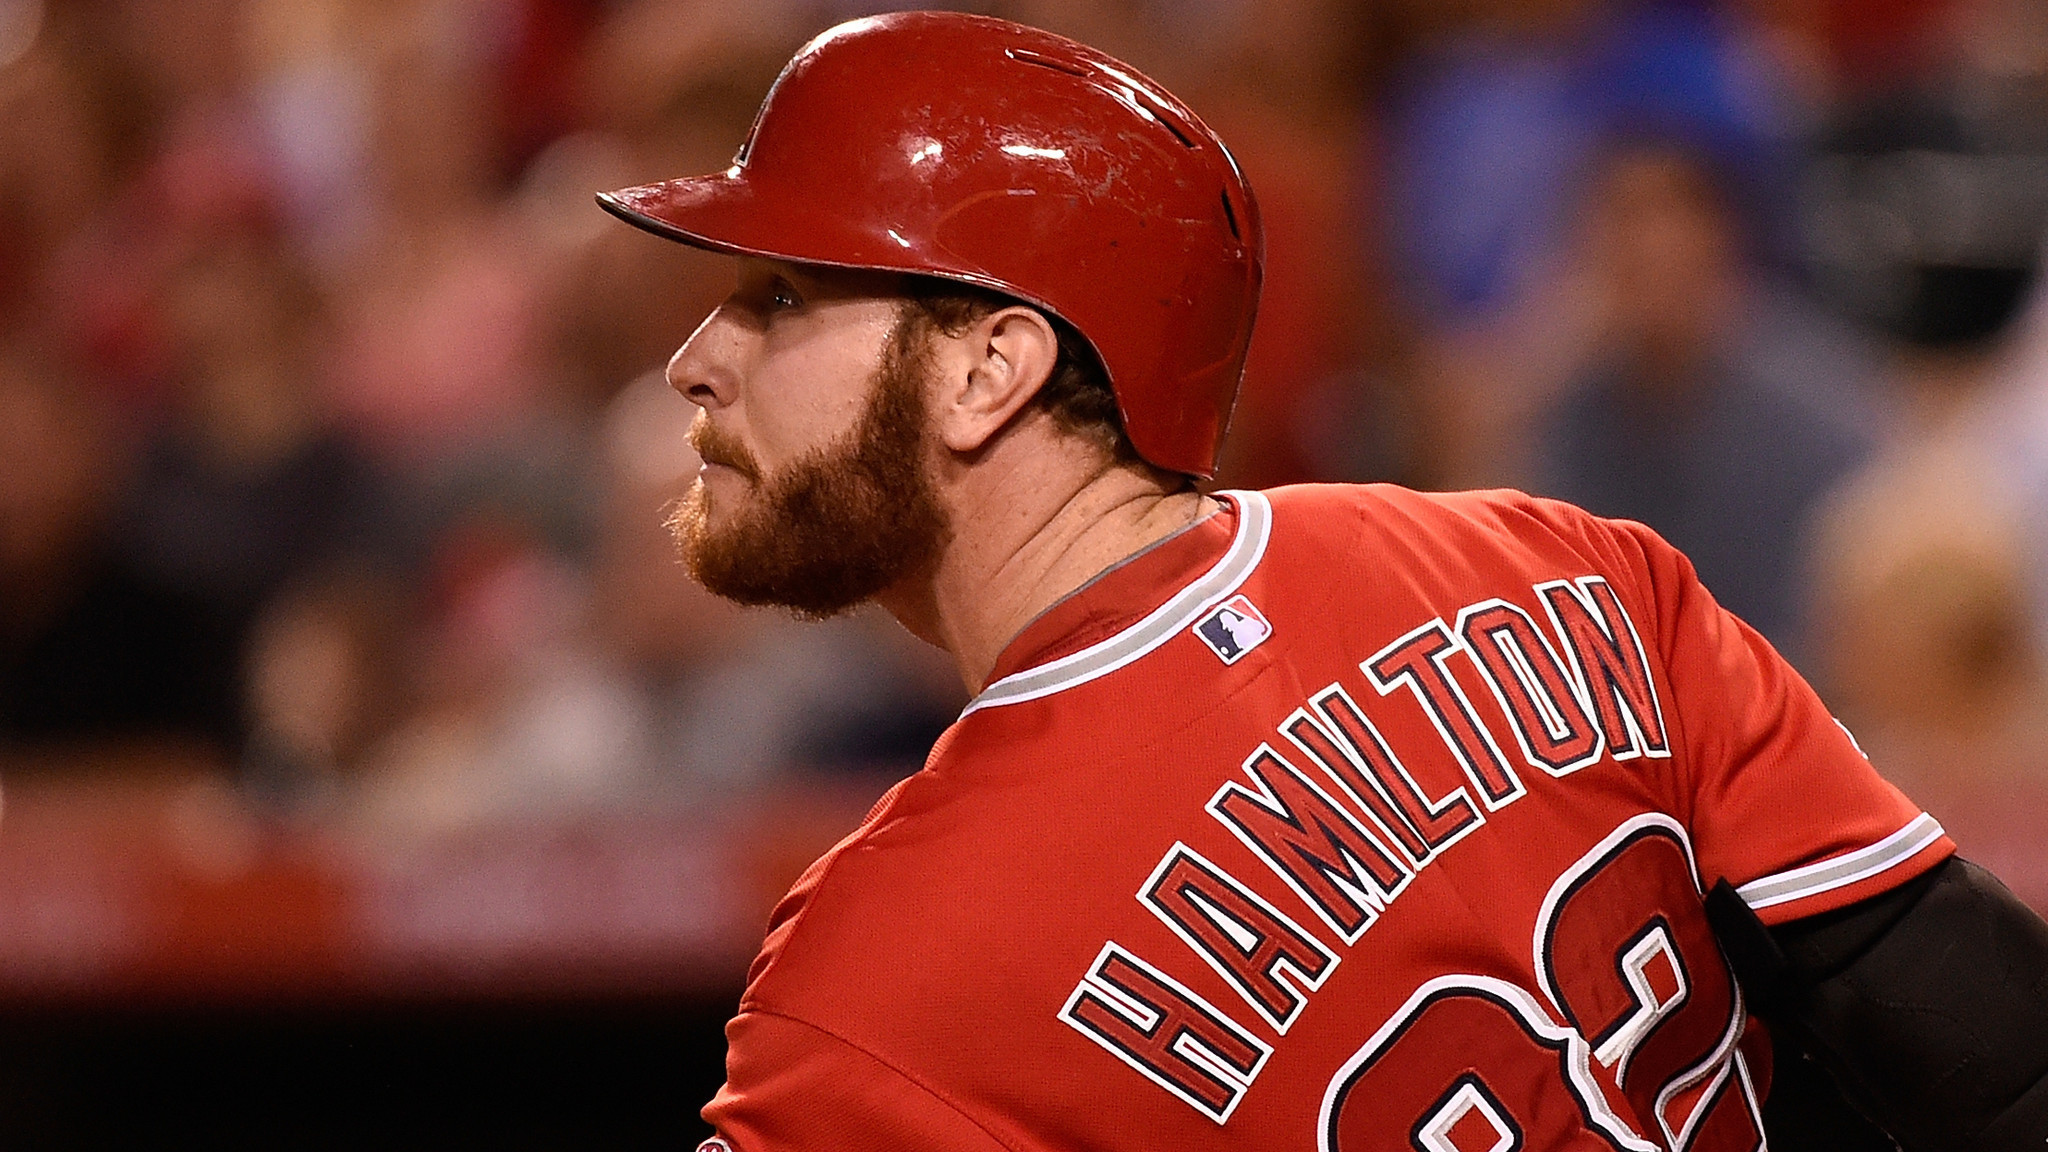 Angels playoff game times announced; Josh Hamilton practices